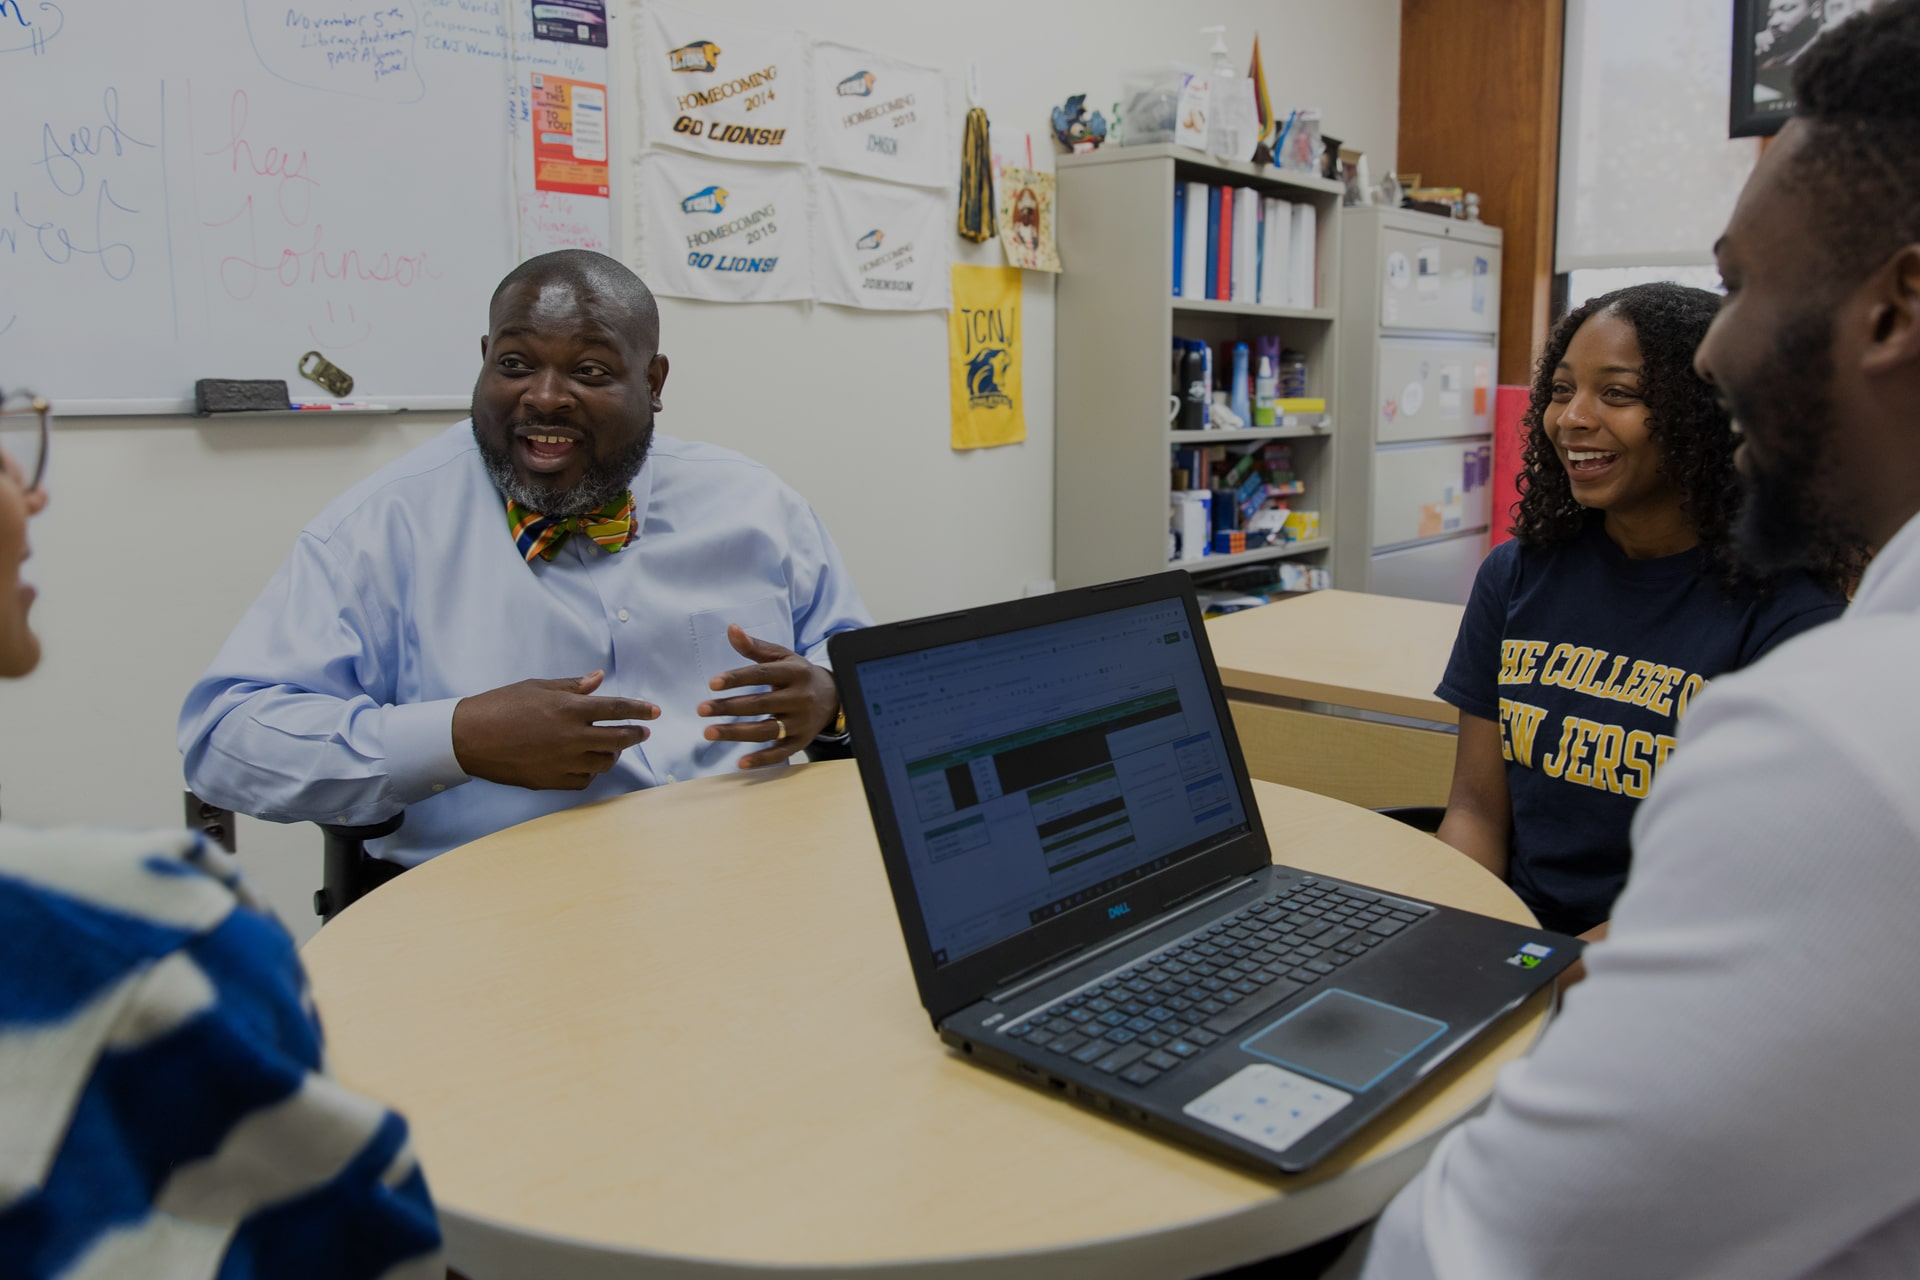 TCNJ staff member working with students